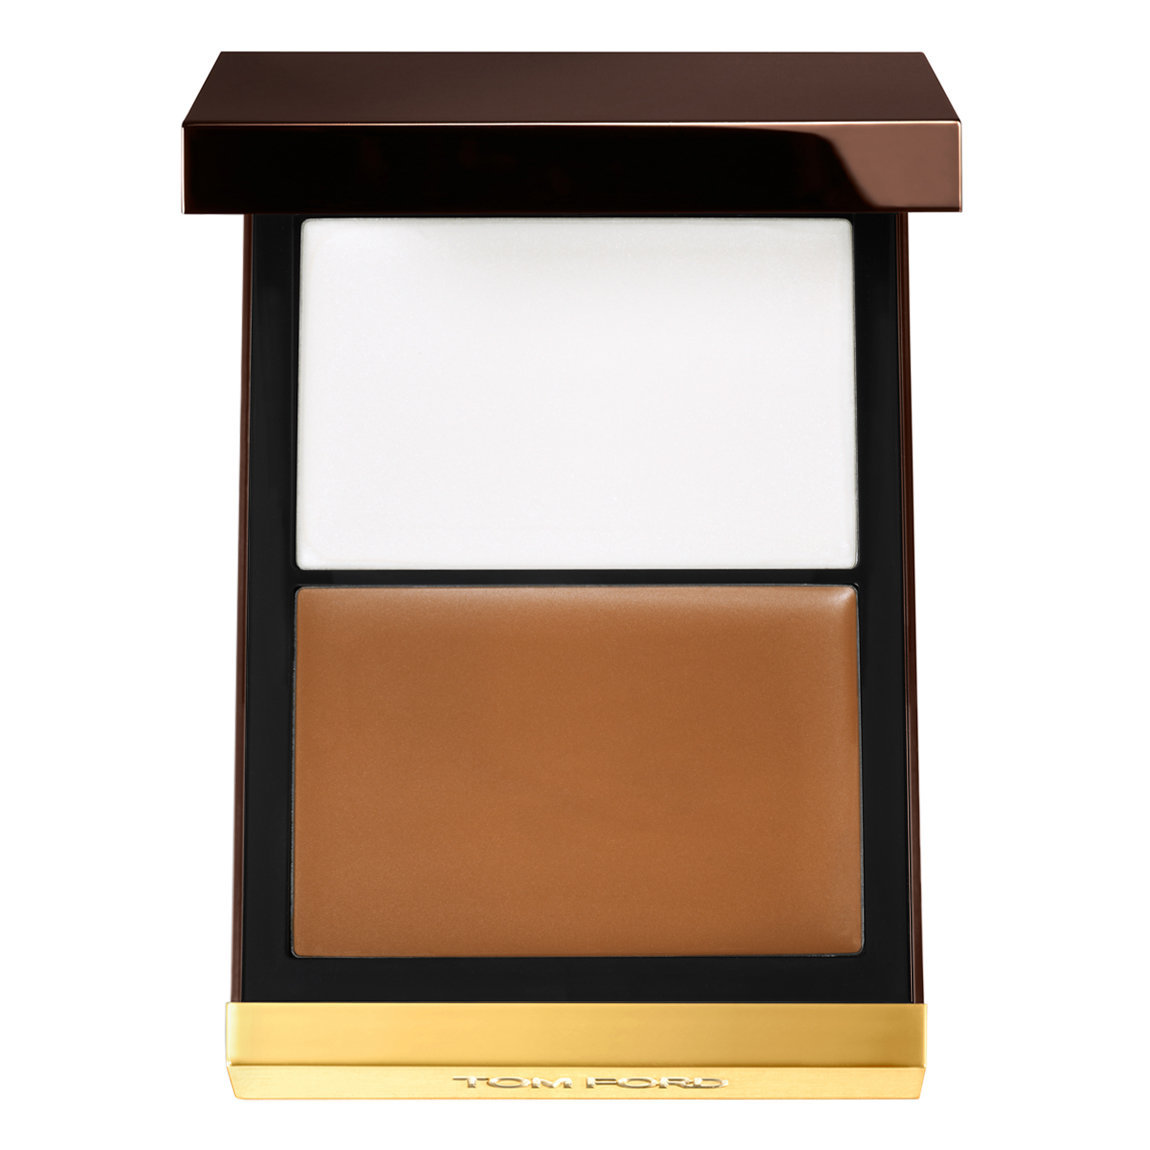 TOM FORD Shade and Illuminate Intensity 01 alternative view 1 - product swatch.